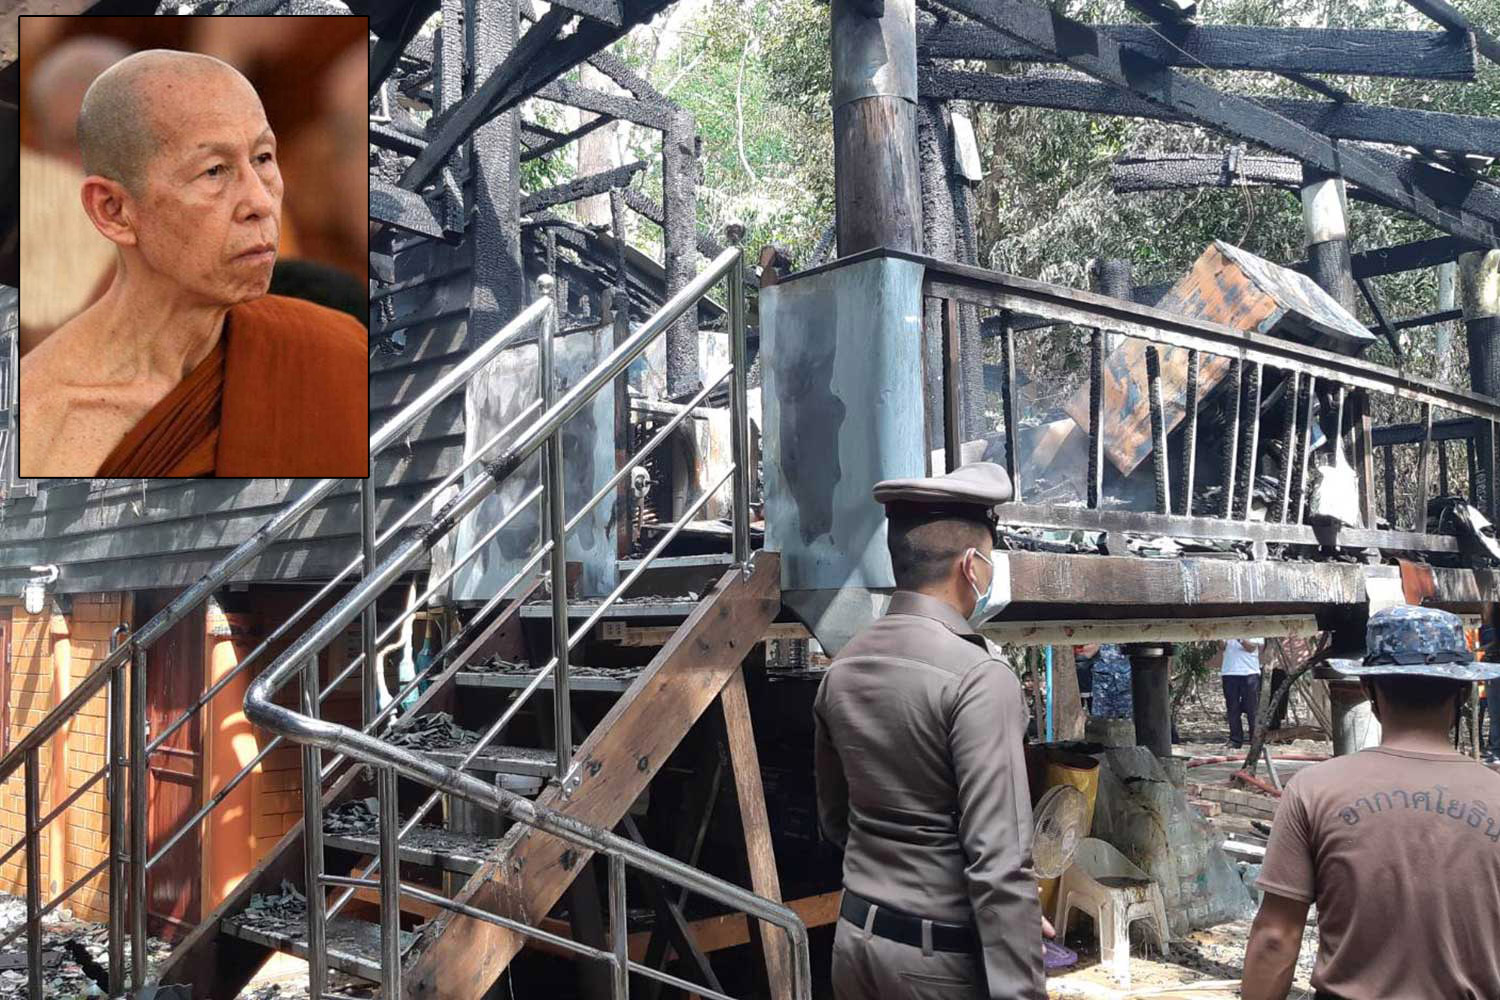 Police examine the scene of the blaze that claimed the life of Phra Ajarn Sudjai Thanthamano, who had served as the abbot of Wat Pa Ban Tad since the passing of the revered Luangta Maha Bua in 2012. (Photo: Yuttapong Kamnodnae)